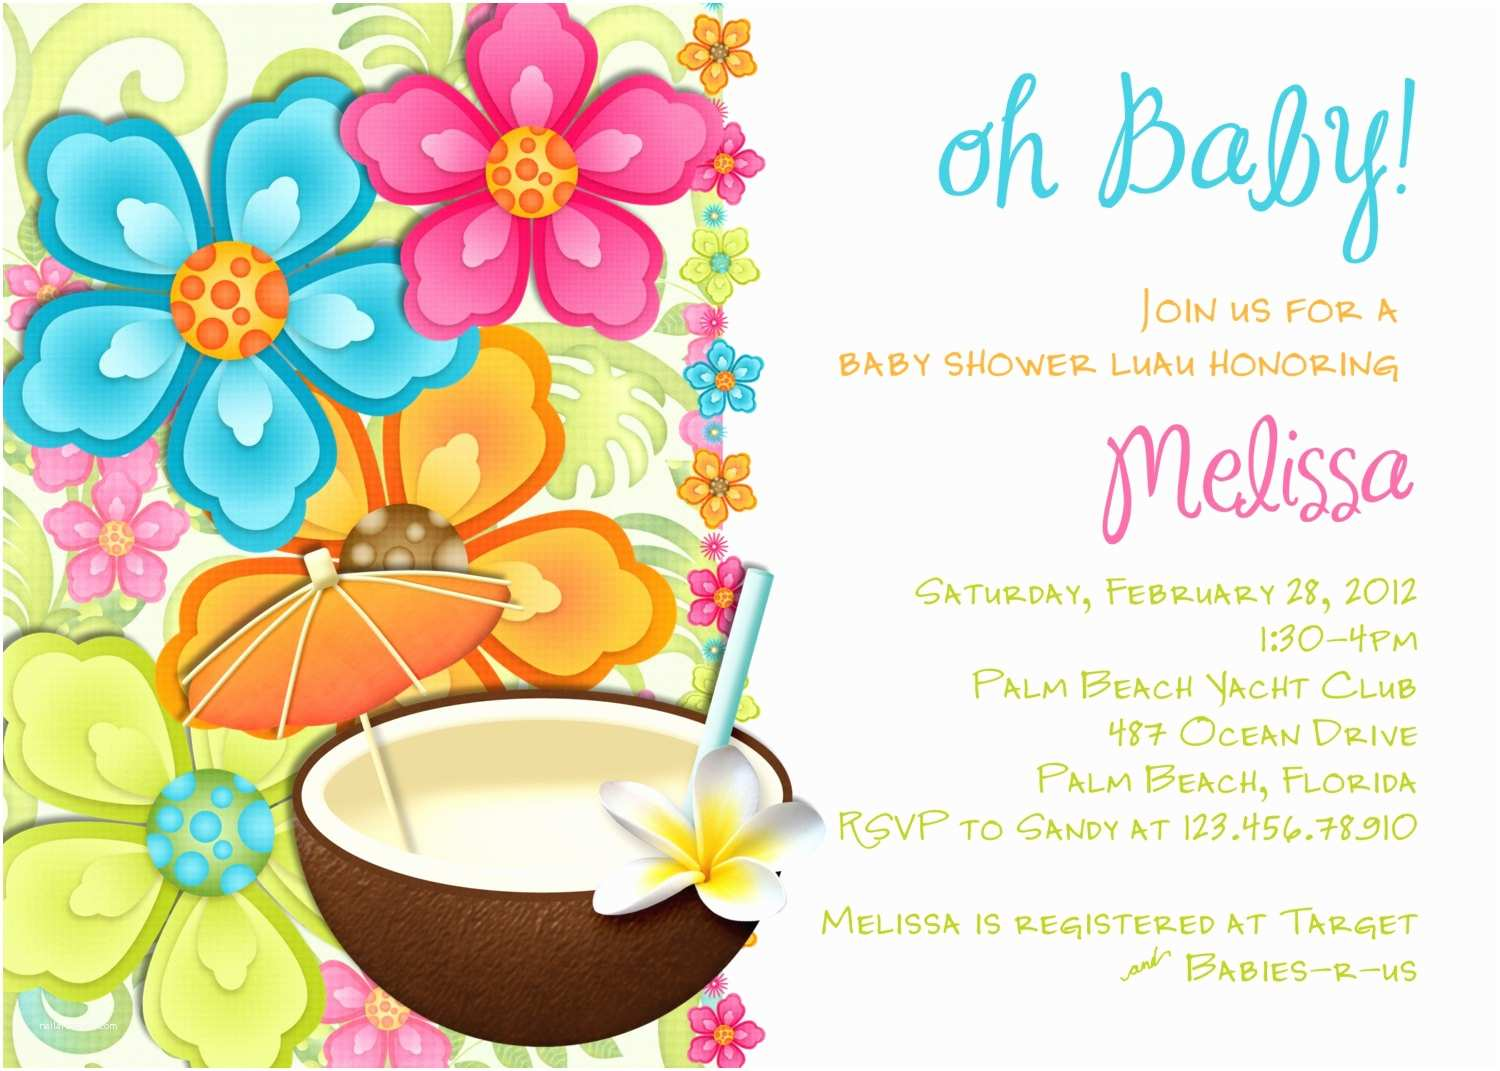 Luau Baby Shower Invitations Luau Baby Shower Invitation Tropical Hawaiian Hula Party